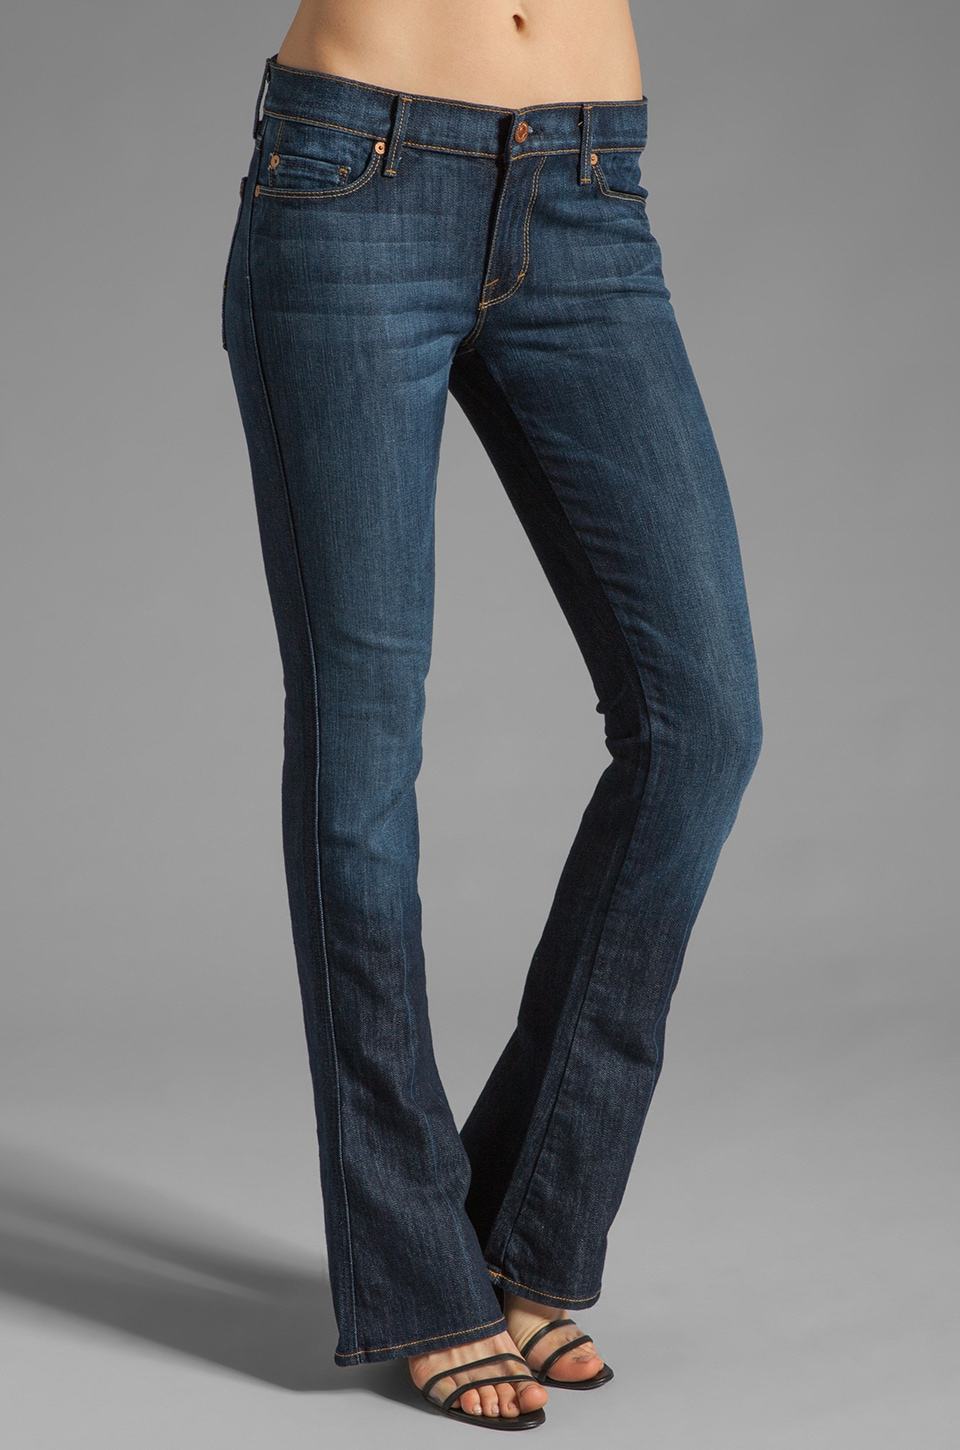 7 For All Mankind Kaylie in Midnight New York Dark